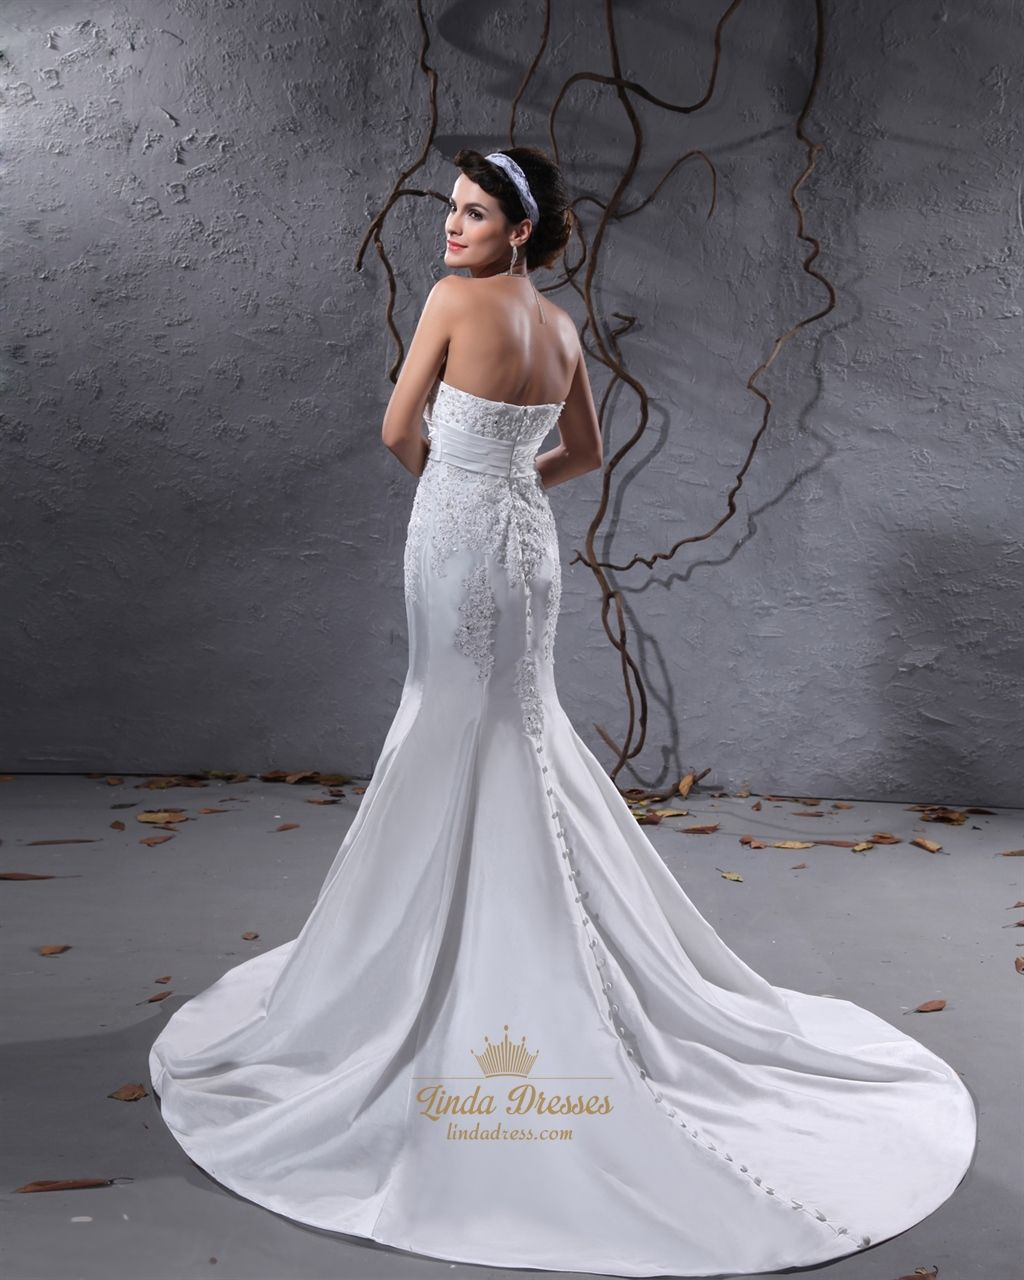 Strapless Mermaid Wedding Dresses With Buttons All Down Back